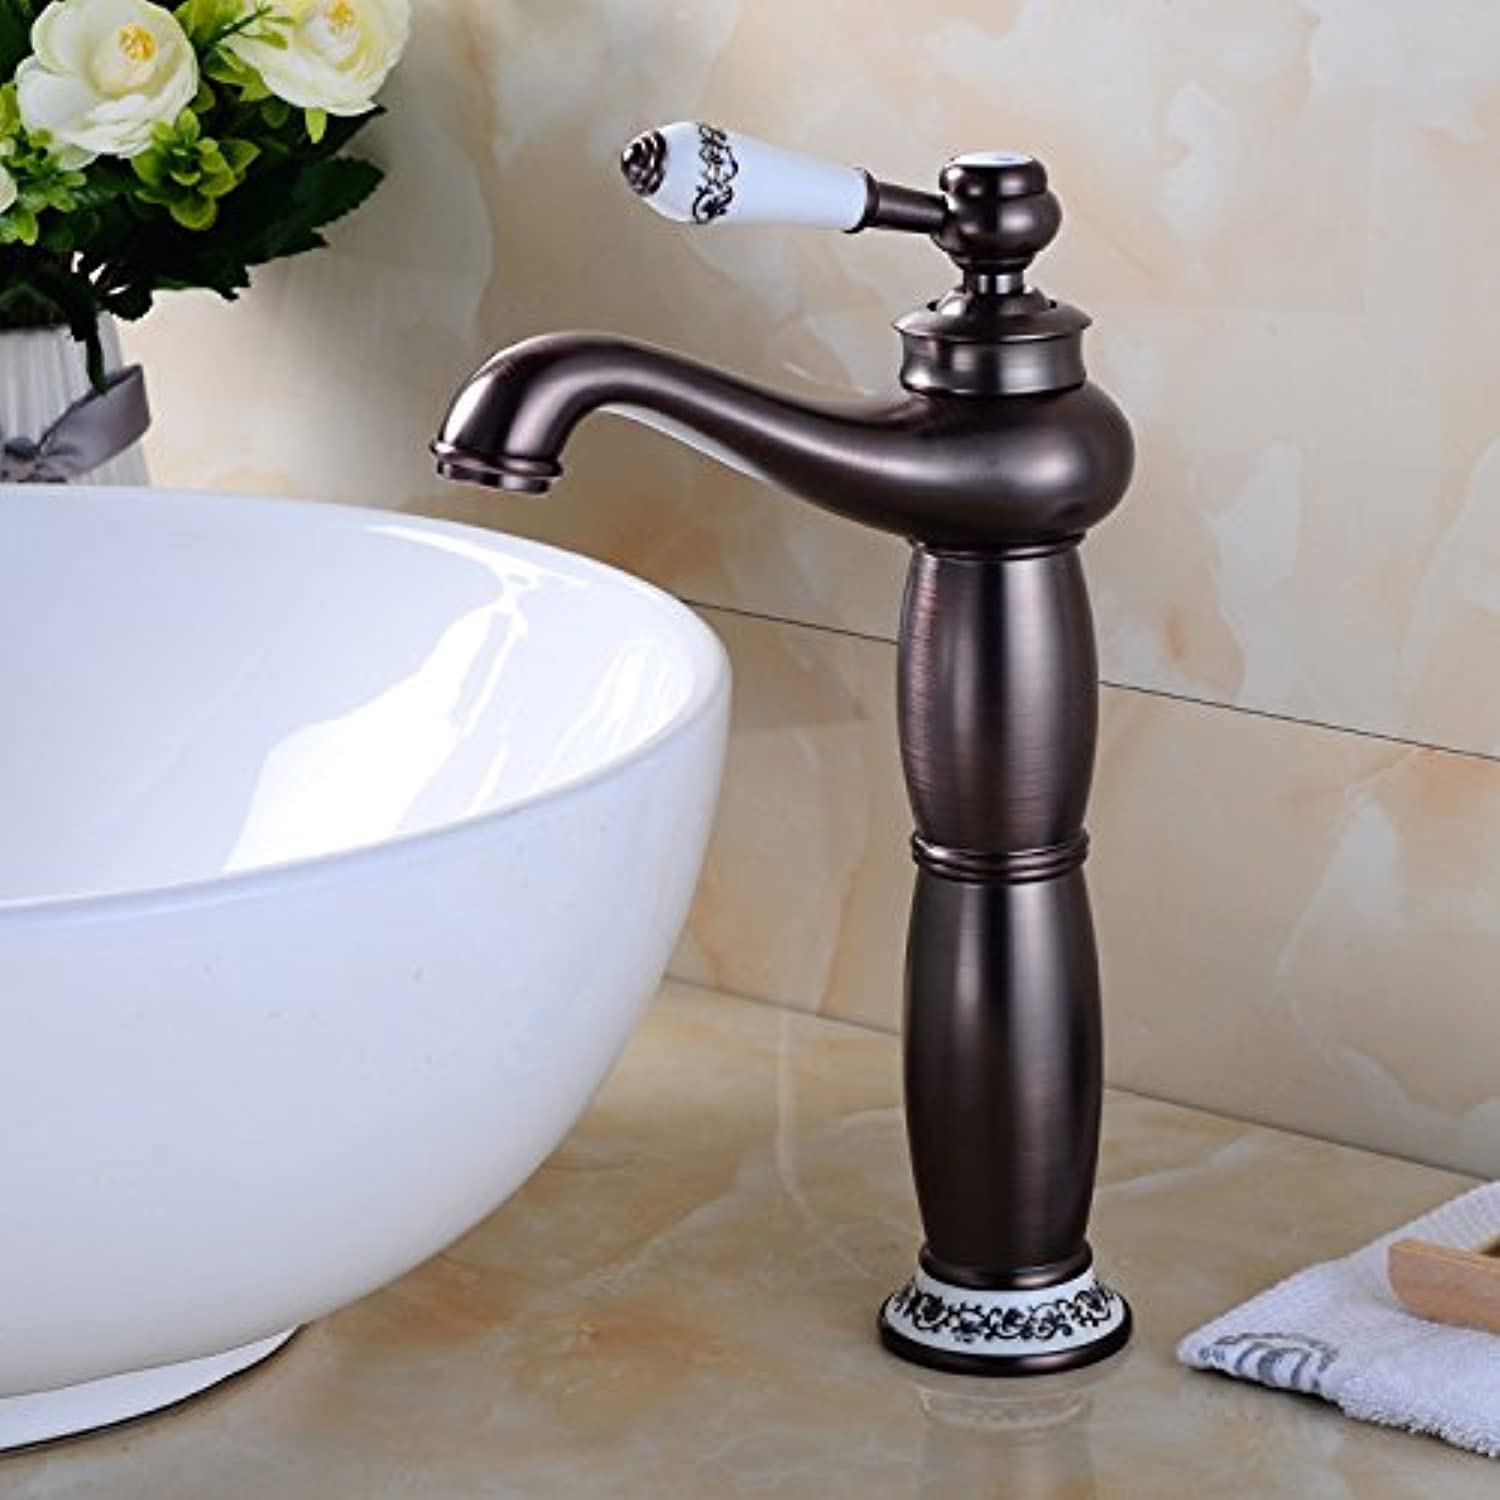 Hlluya Professional Sink Mixer Tap Kitchen Faucet The Copper Black antique bathroom faucet basin cold water faucet stainless steel faucet, D.